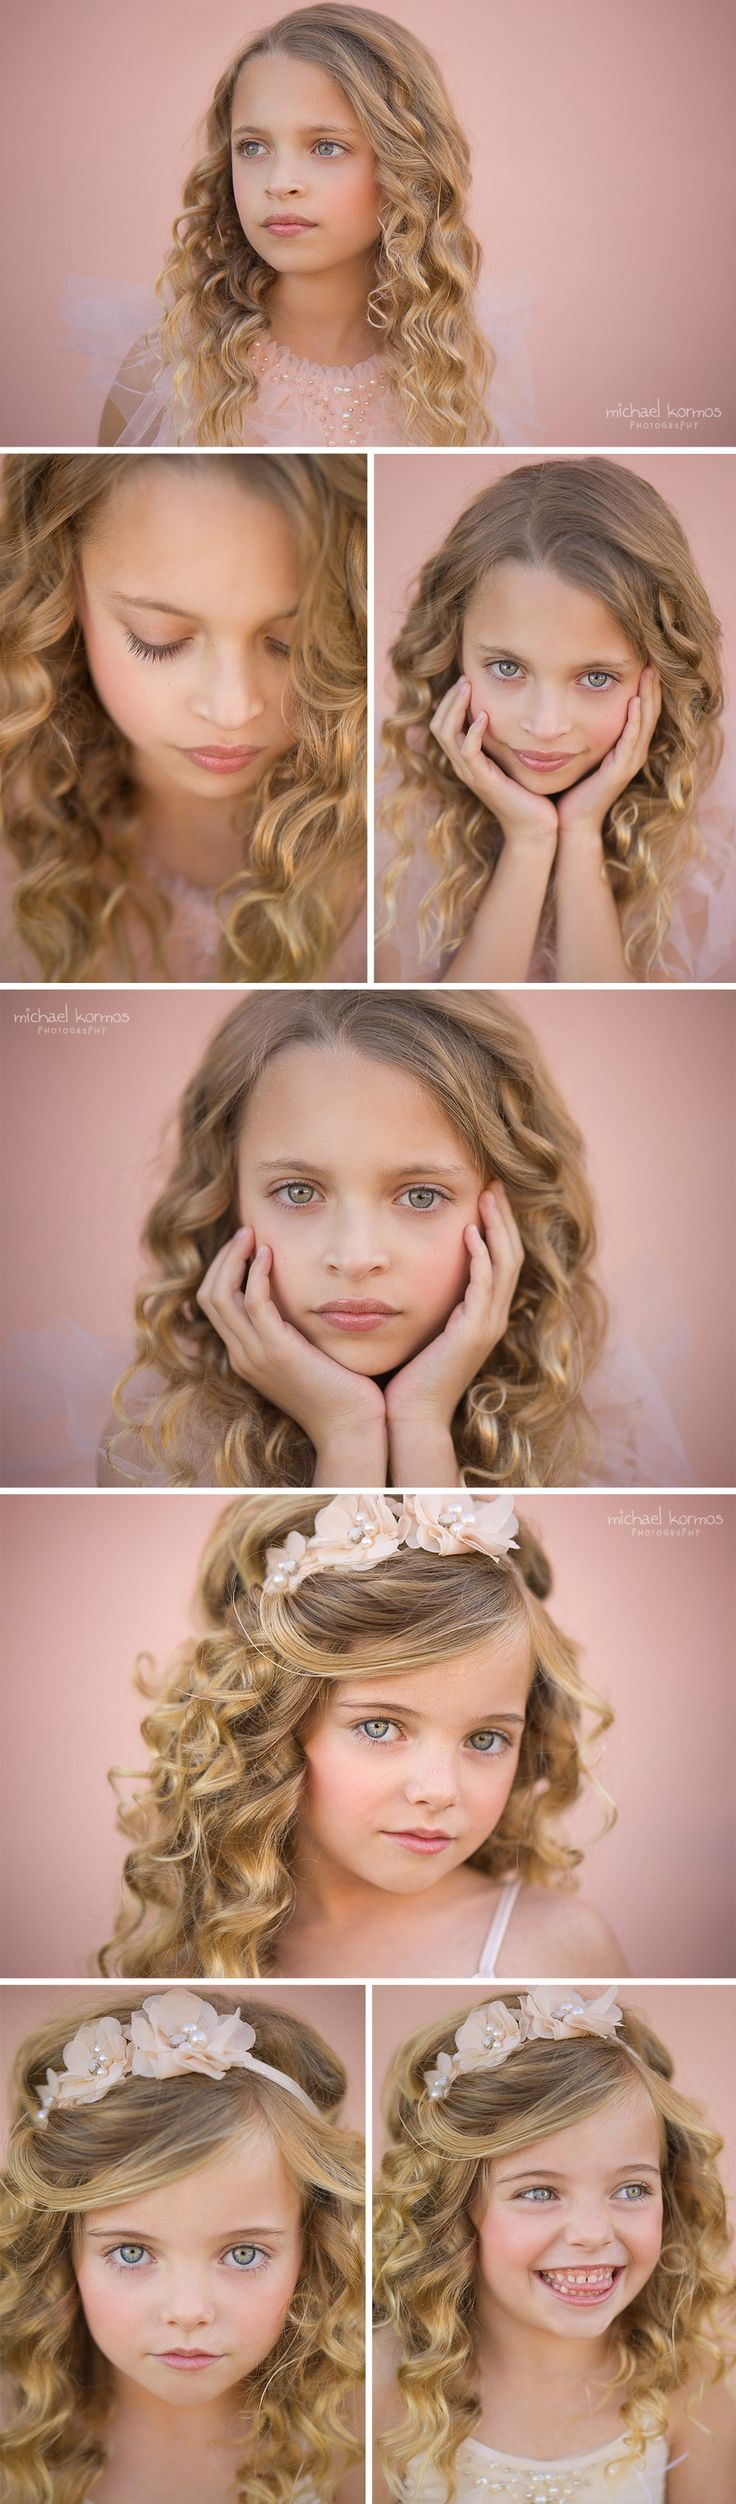 beauty in unexpected places (child photography nyc, family photographer long island) | Michael & Sophie Kormos Photography | BLOG.